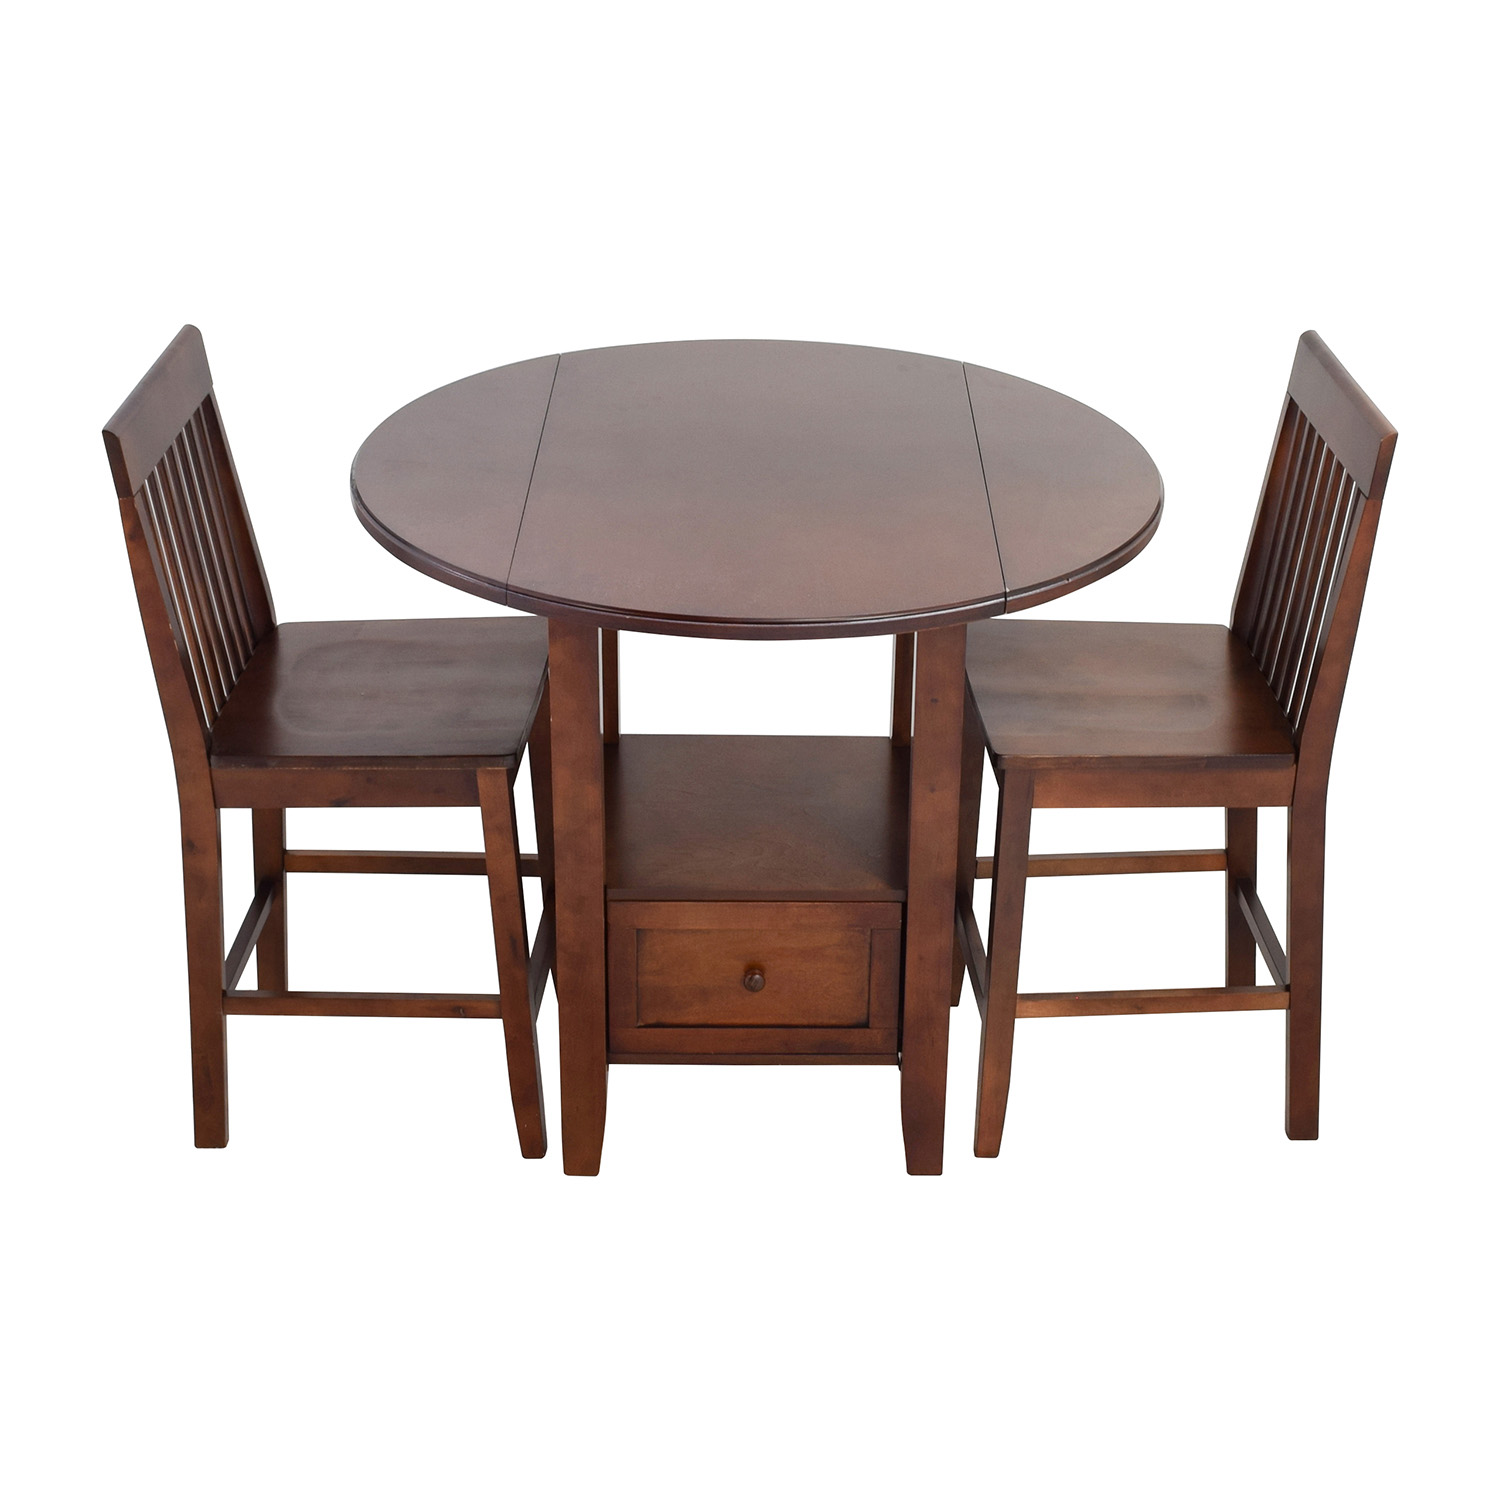 Threshold Threshold Pub Table Set discount